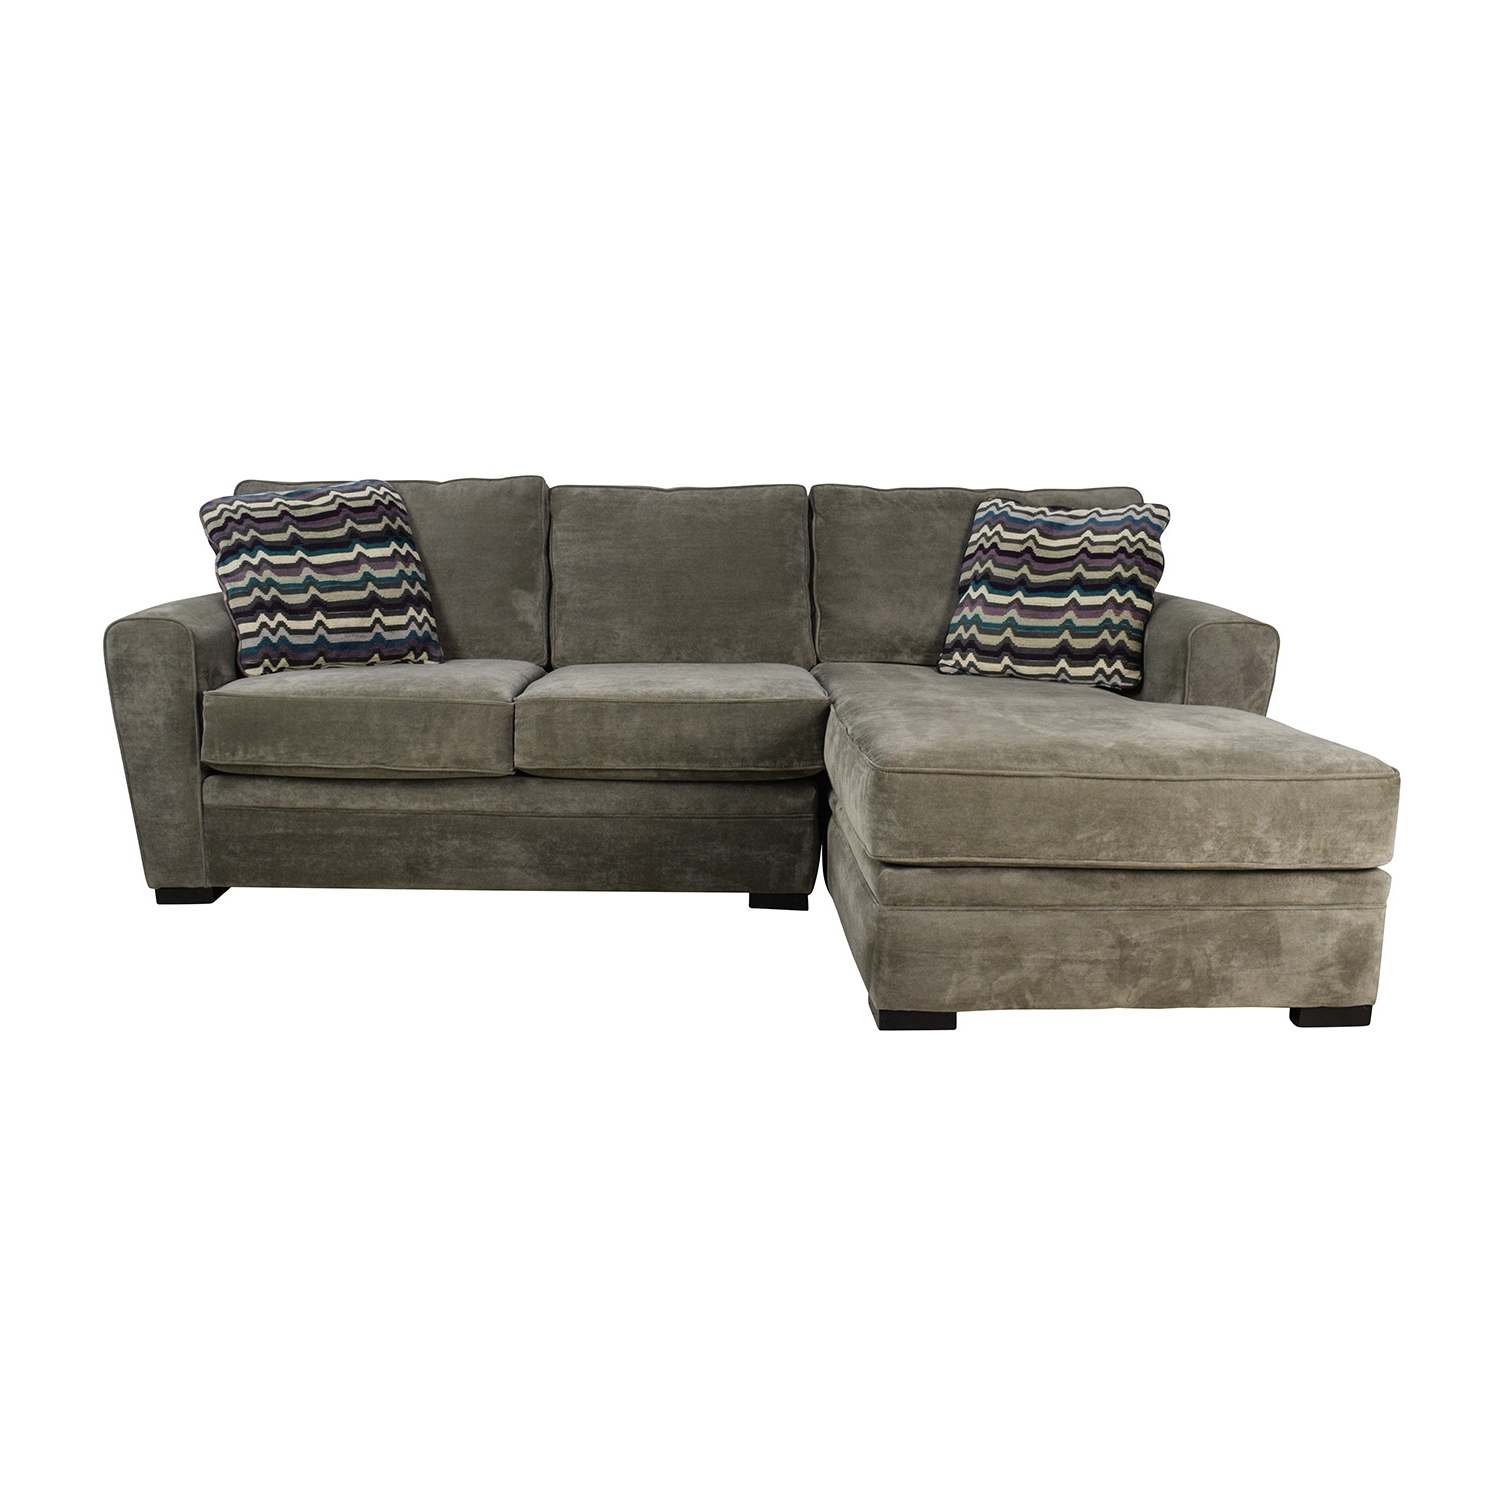 [%52% Off – Raymour & Flanigan Raymour & Flanigan Artemis Ii For Trendy Sectional Sofas At Raymour And Flanigan|Sectional Sofas At Raymour And Flanigan In Most Recent 52% Off – Raymour & Flanigan Raymour & Flanigan Artemis Ii|2019 Sectional Sofas At Raymour And Flanigan Inside 52% Off – Raymour & Flanigan Raymour & Flanigan Artemis Ii|Popular 52% Off – Raymour & Flanigan Raymour & Flanigan Artemis Ii For Sectional Sofas At Raymour And Flanigan%] (View 2 of 20)